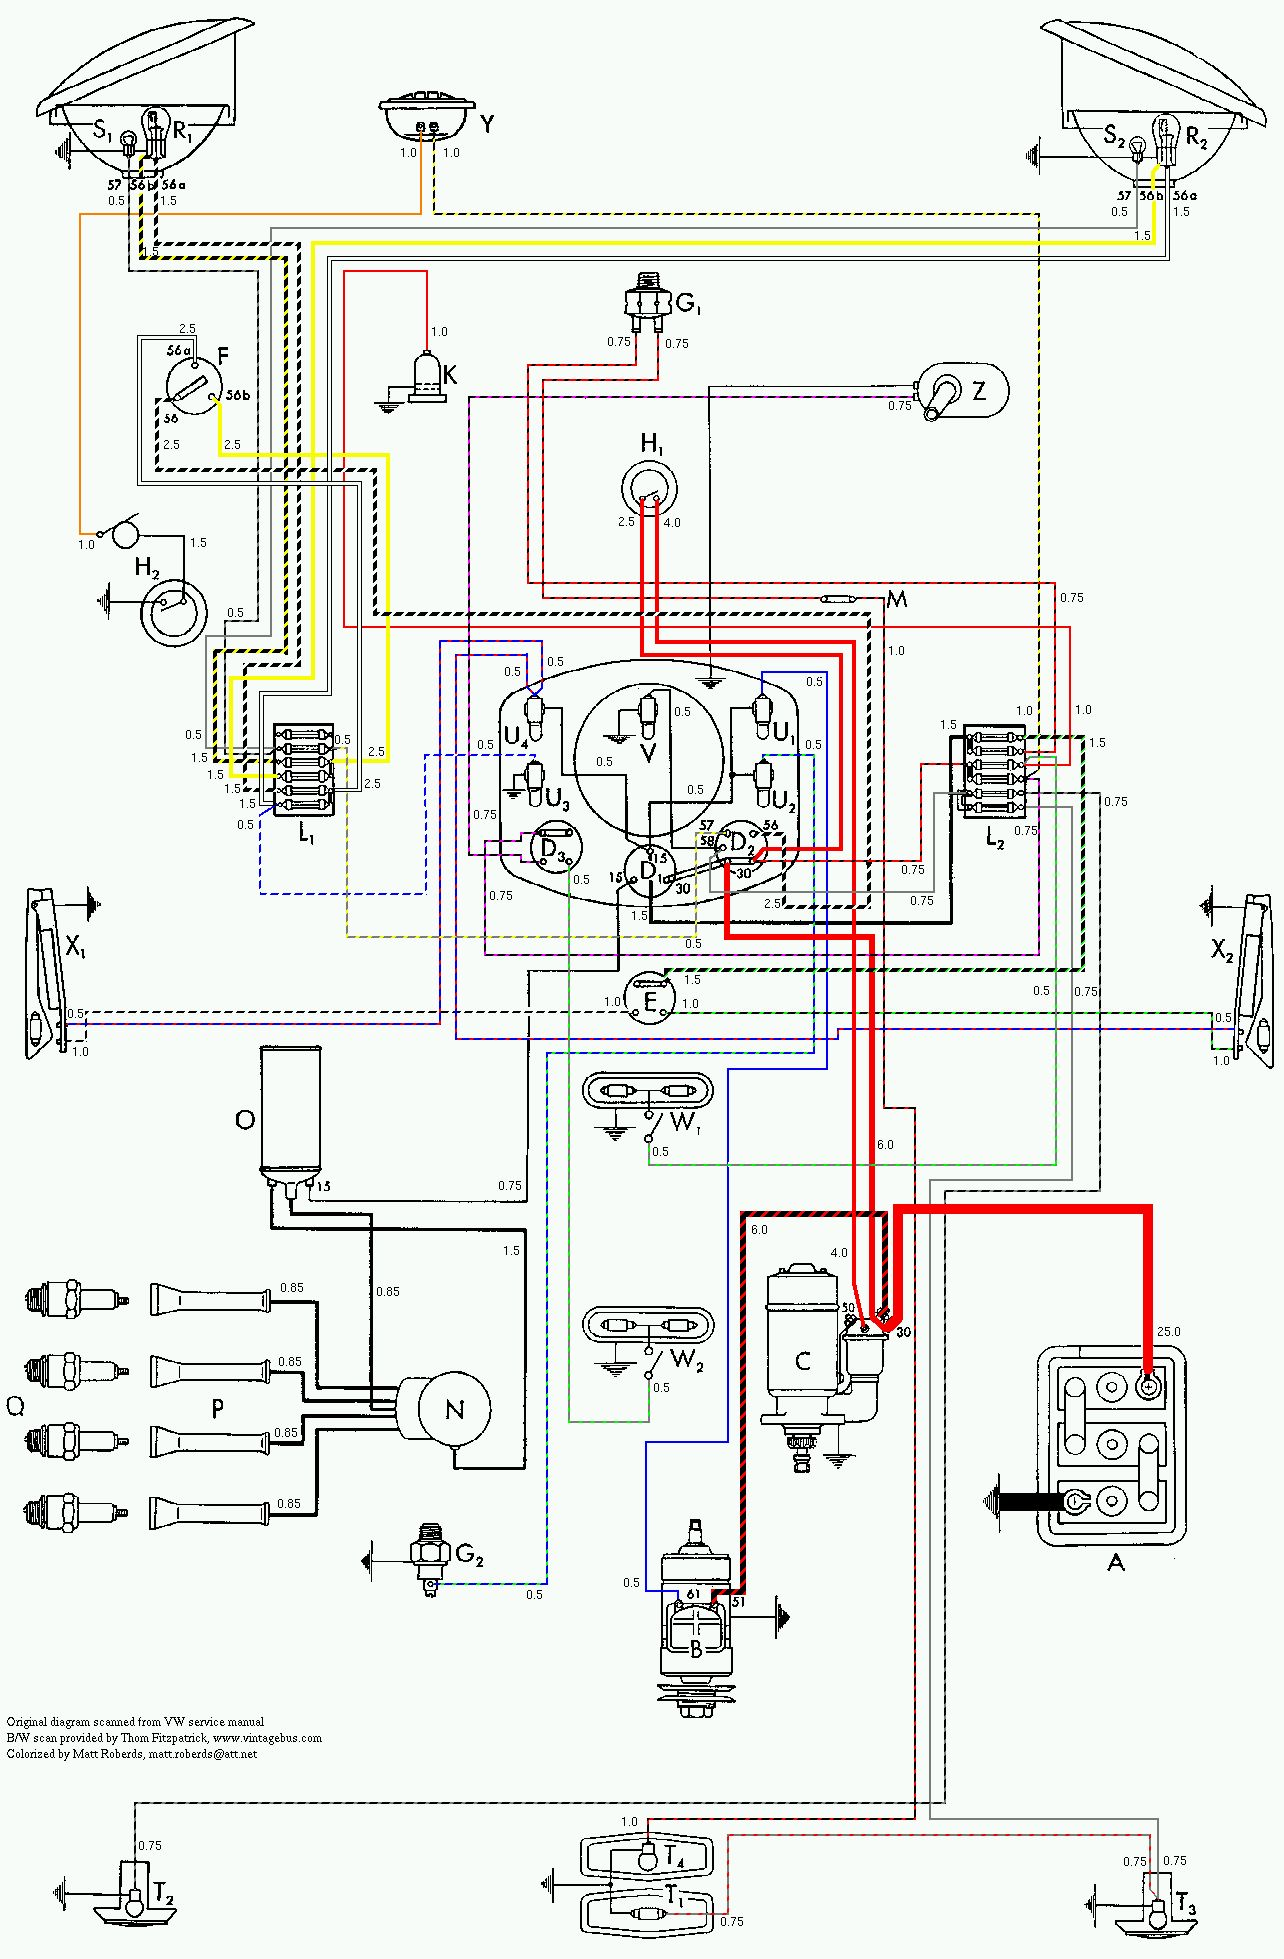 vw bullimania.it 1960 vw bus wiring diagram vw bus wiring diagram jet l